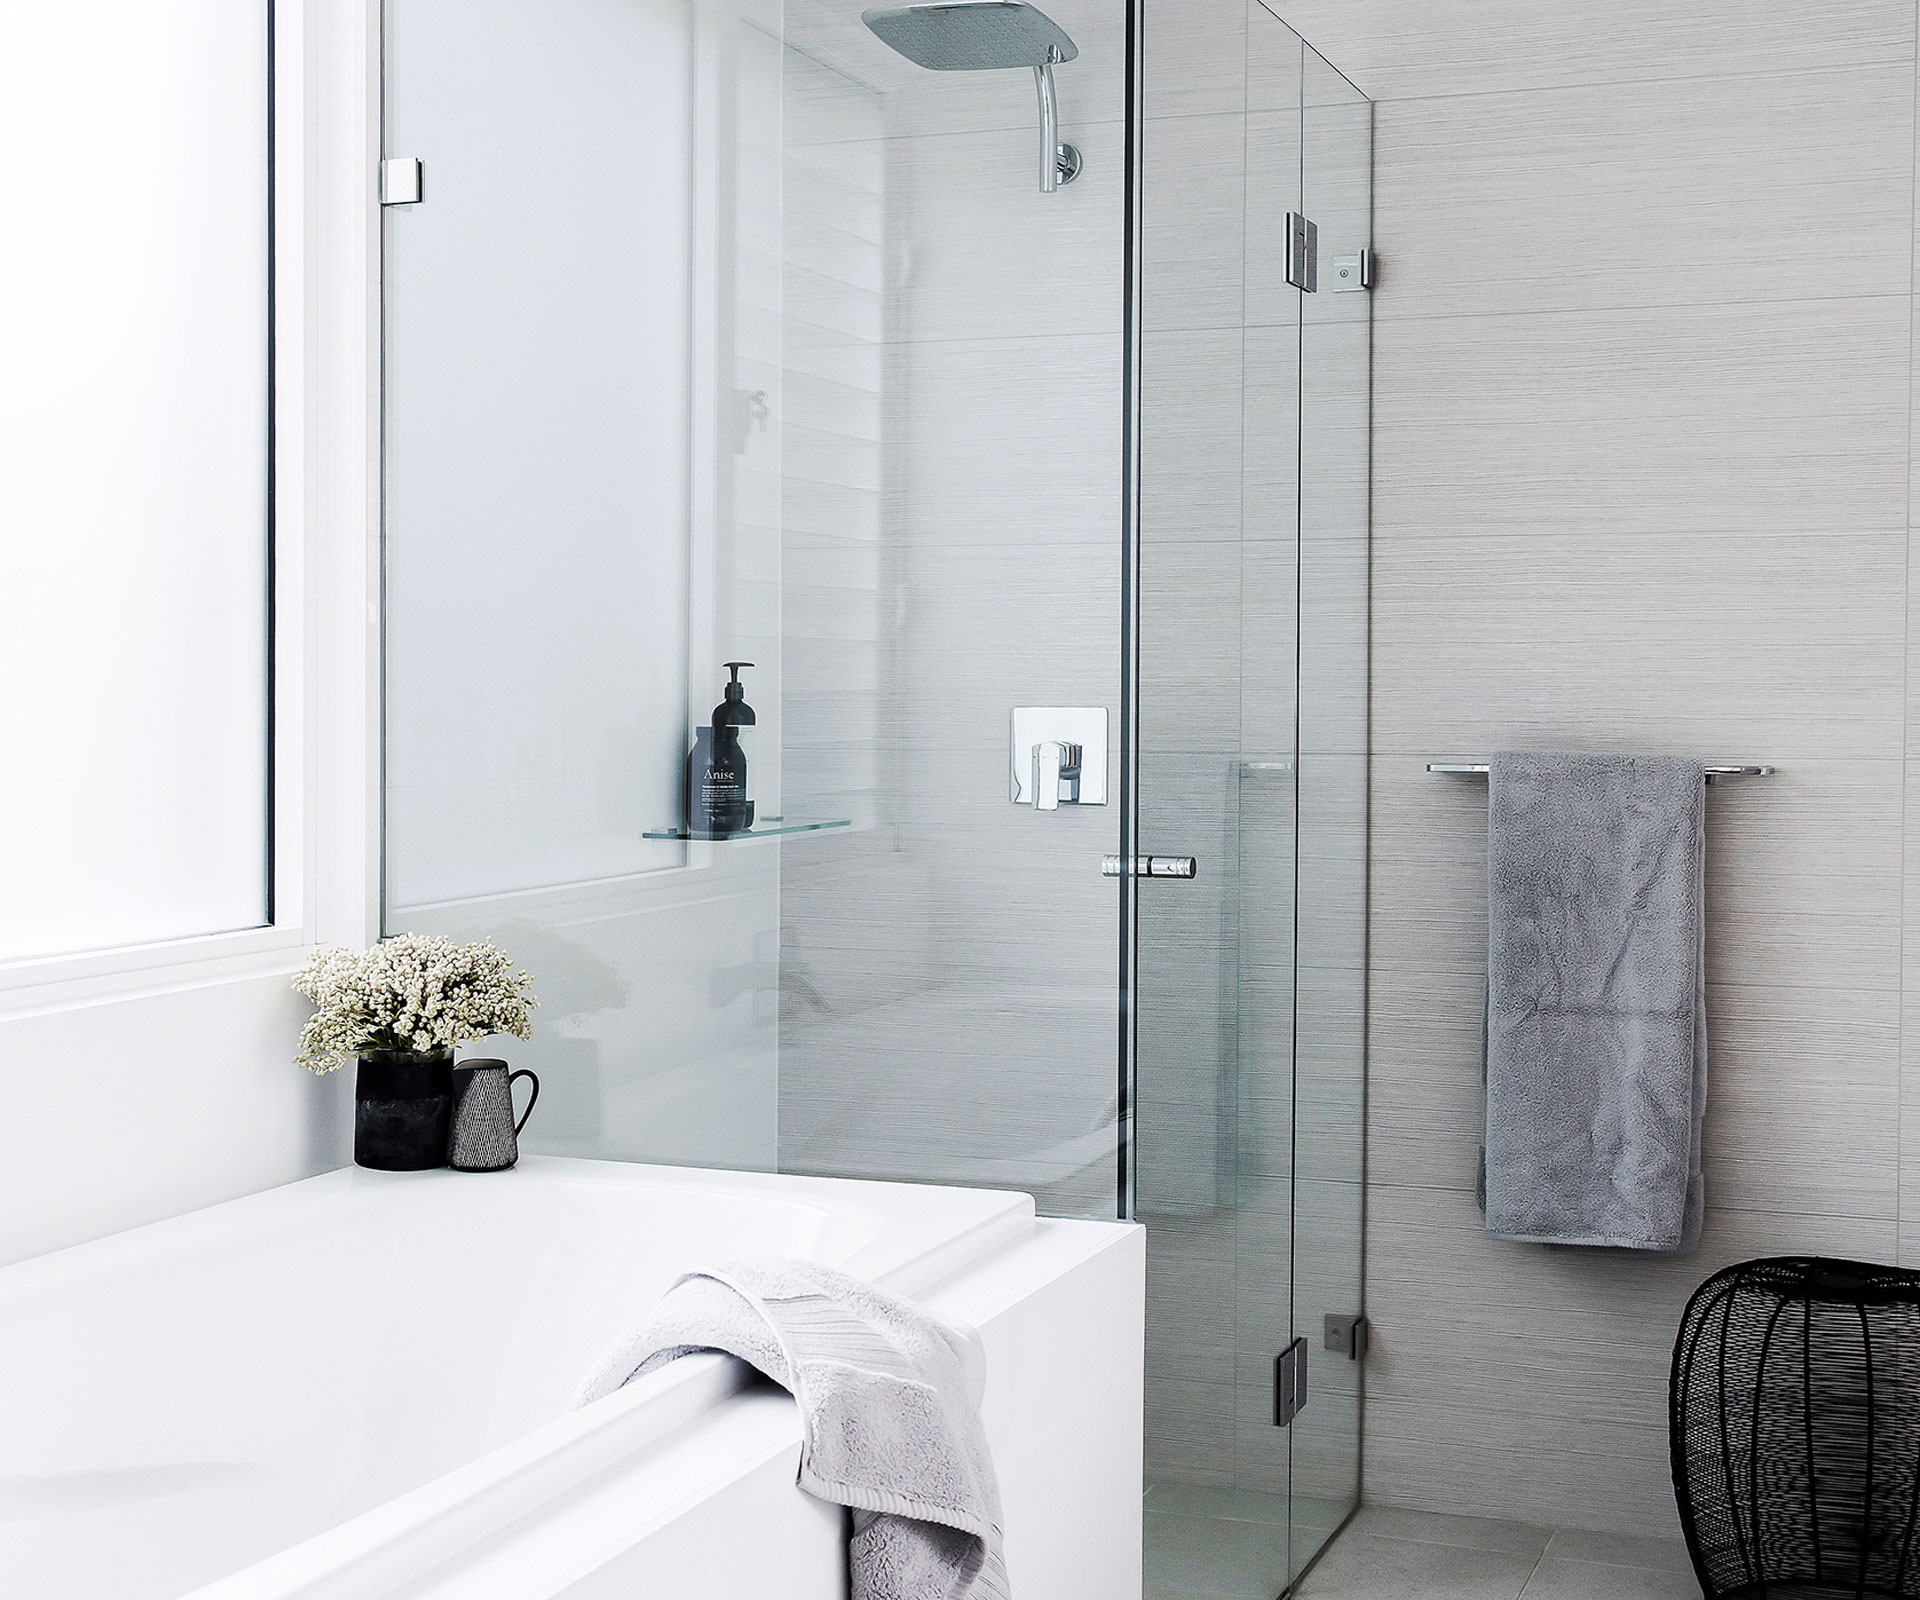 7 ways to clean your shower (and keep it that way), naturally